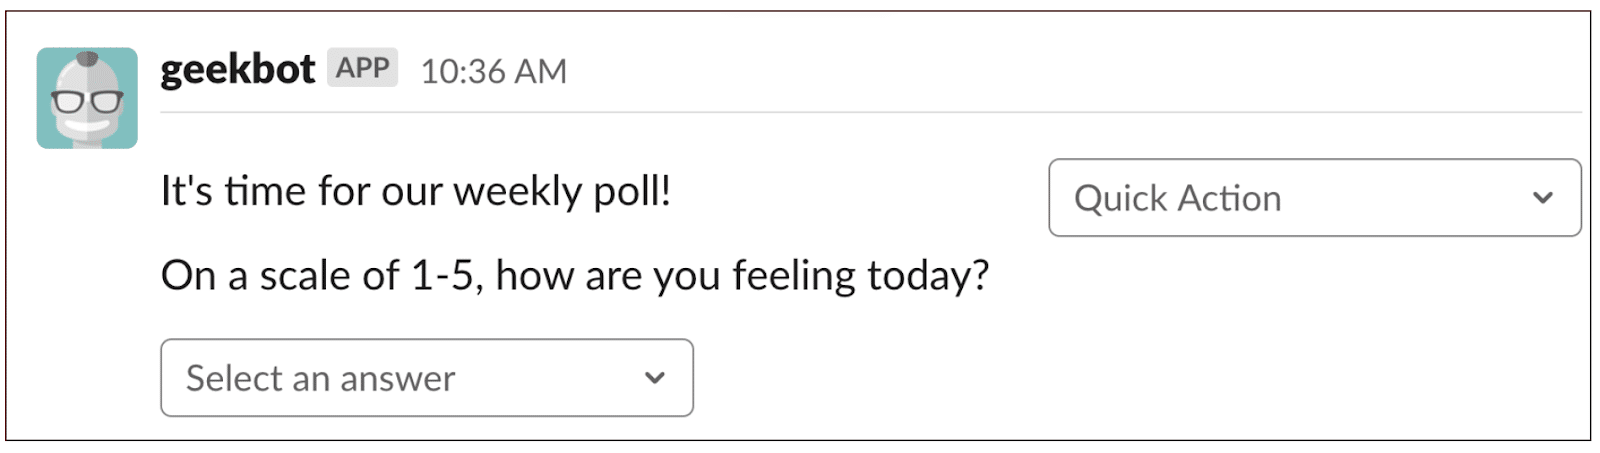 """Geekbot app: It's time for our weekly poll! """"On a scale of 1-5, how are you feeling today?"""""""